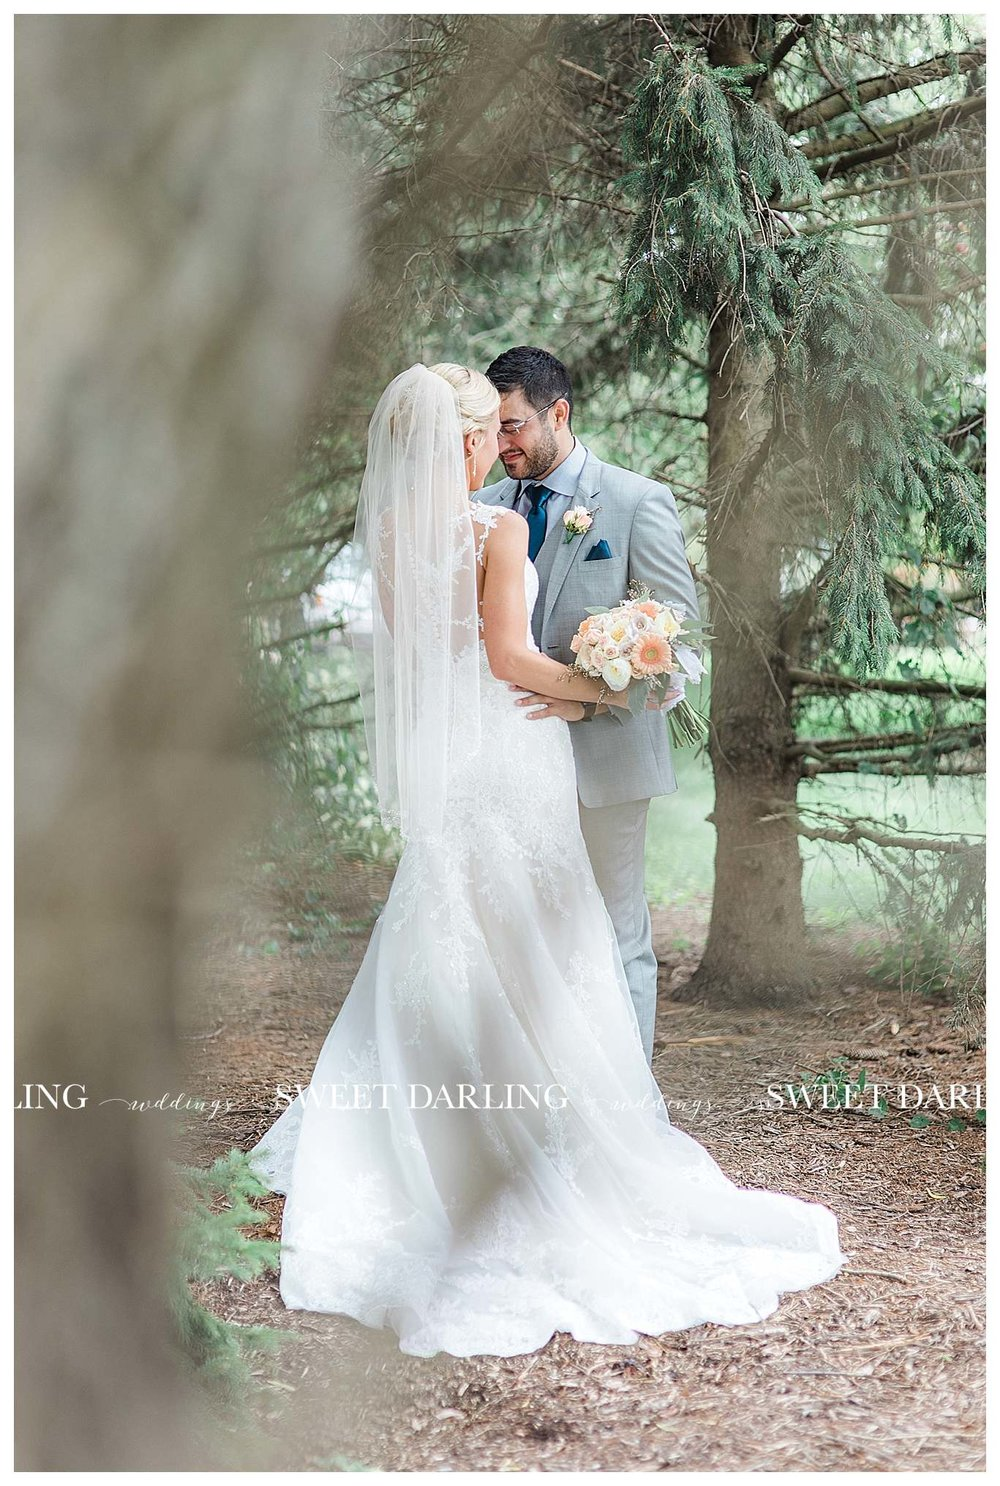 champaign-county-illinois-Pear-Tree-Estate-sweet-darling-weddings-photography_1513.jpg